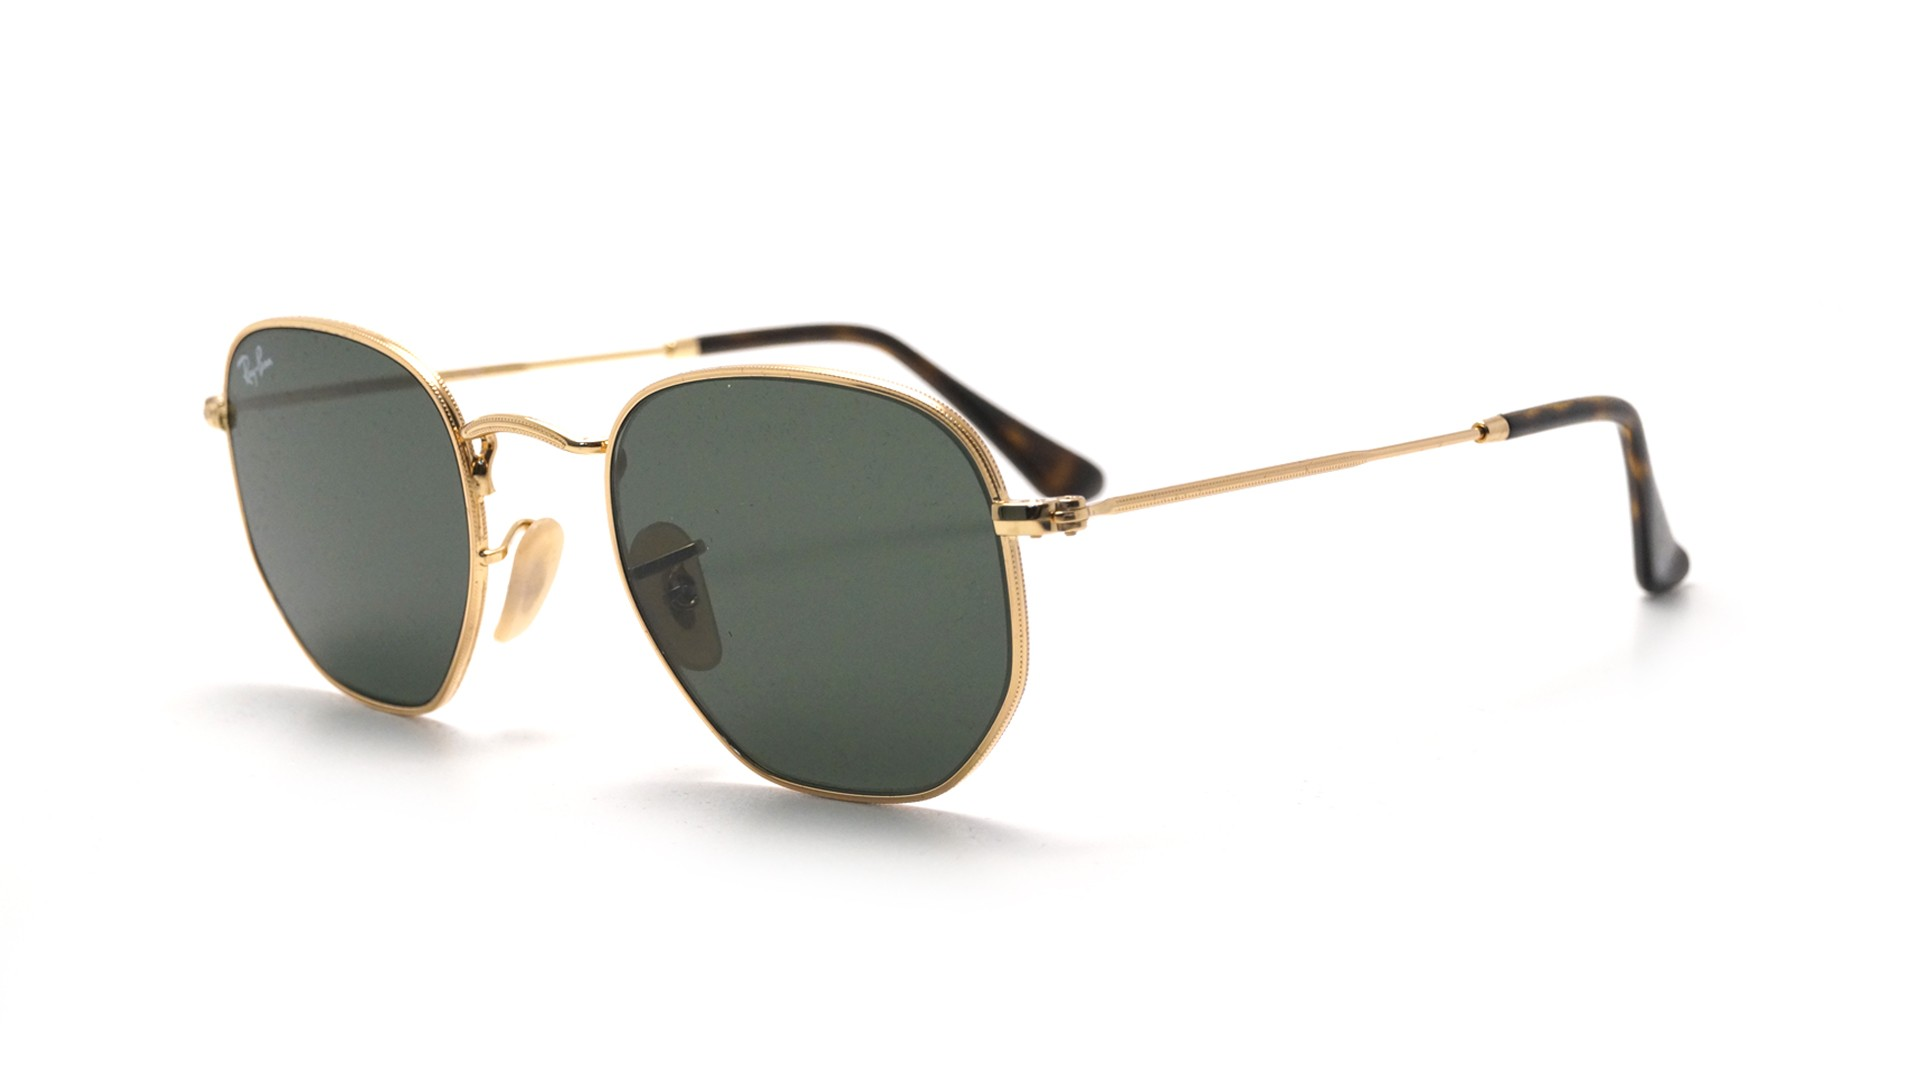 7e96734912430 Sunglasses Ray-Ban RB3548N 001 51-21 Gold Medium Flash